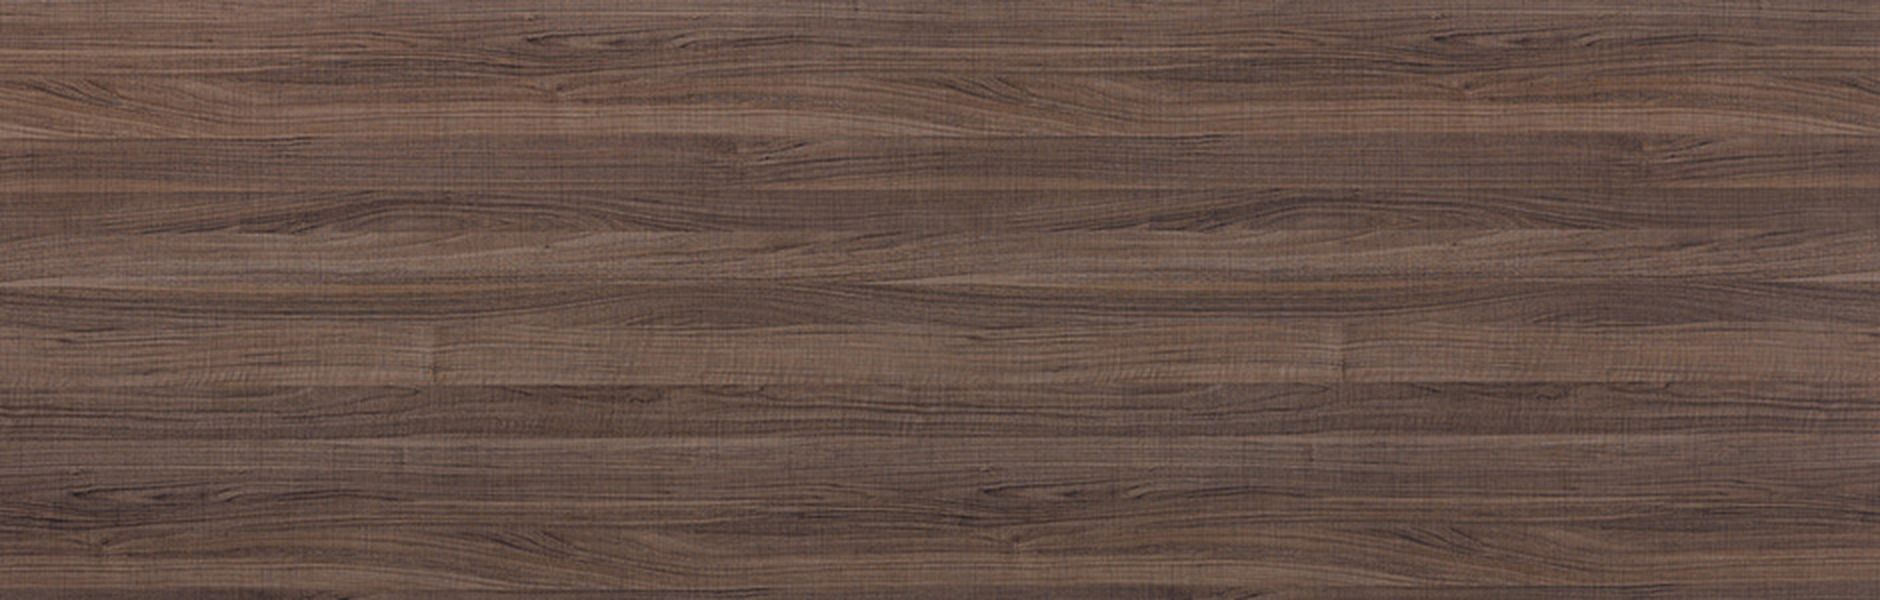 Фото 4 - Декоративные панели Sibu WoodLine nutwood country